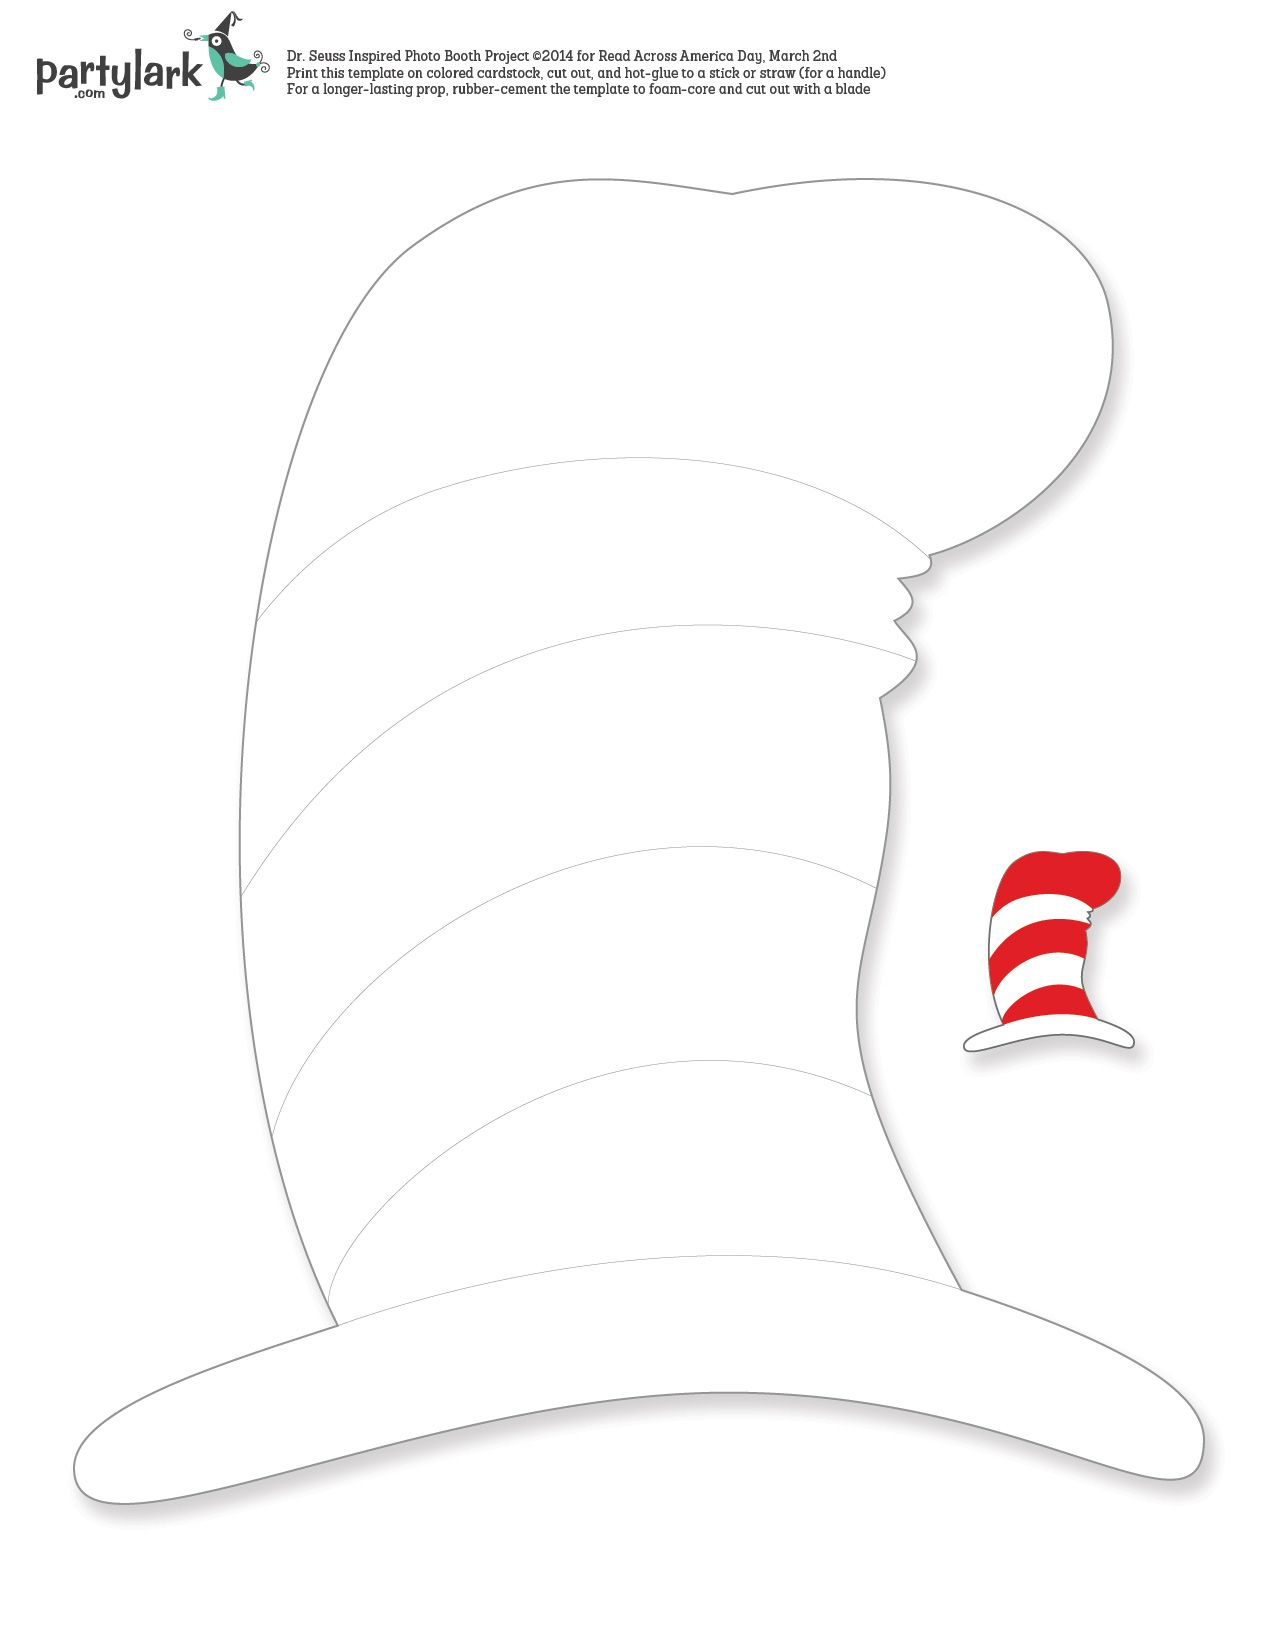 A Seussical twist on photo booth props! Just in time for